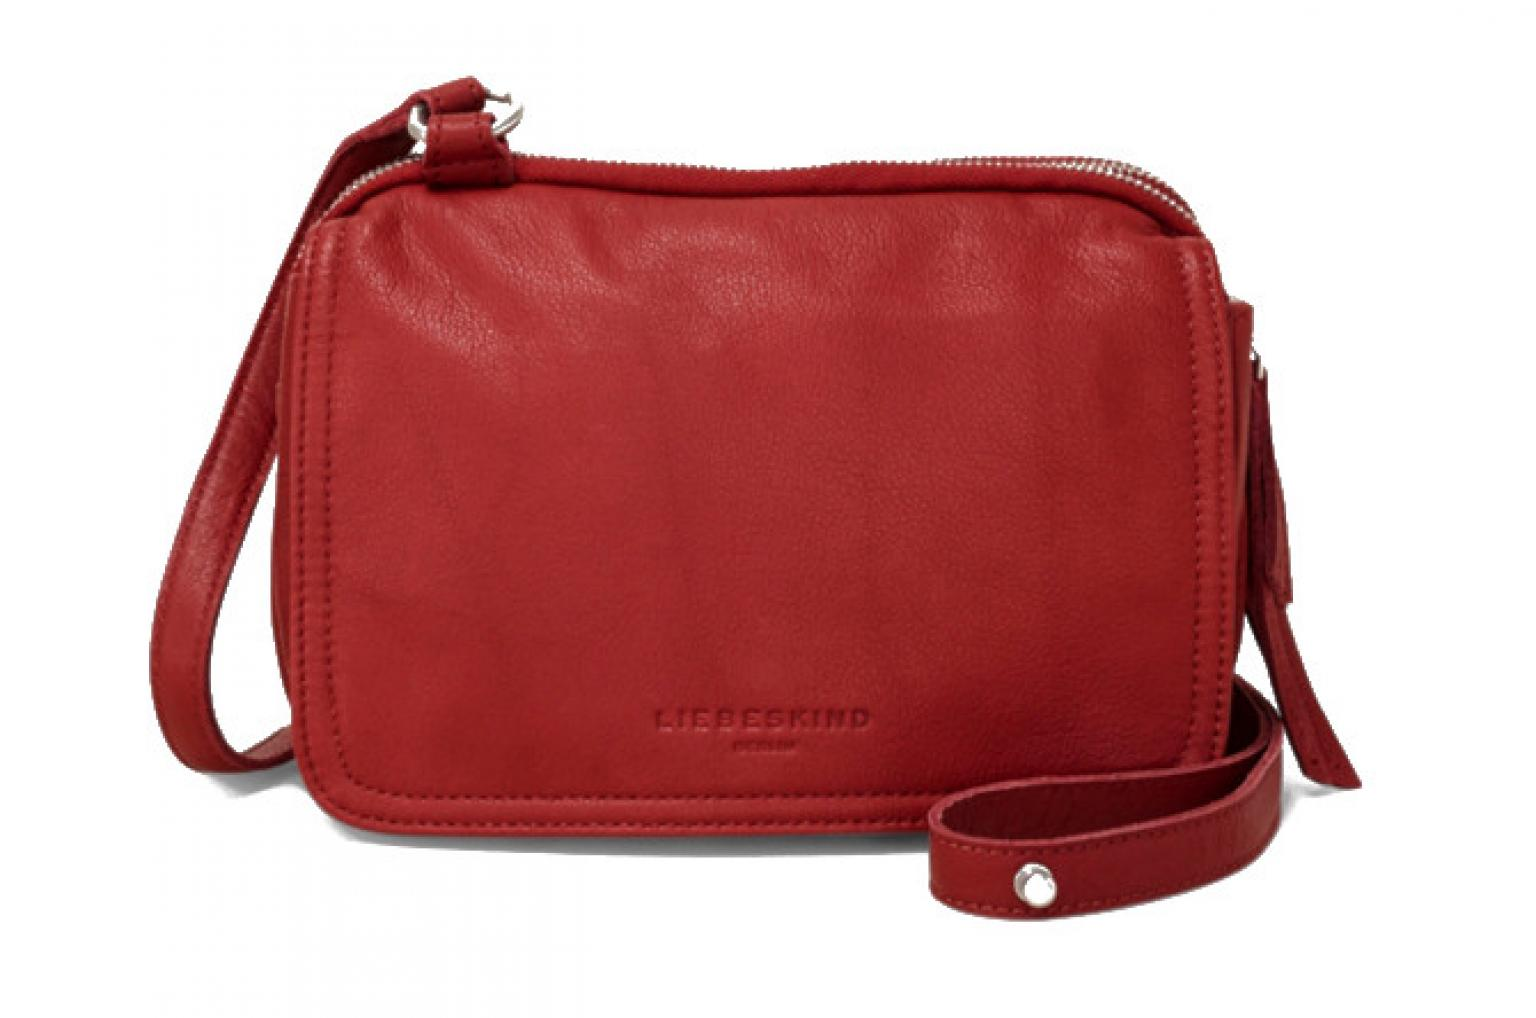 59c10aaa965d2 Liebeskind Crossovertasche Leder Maike7 phonebox red rot - Bags   more